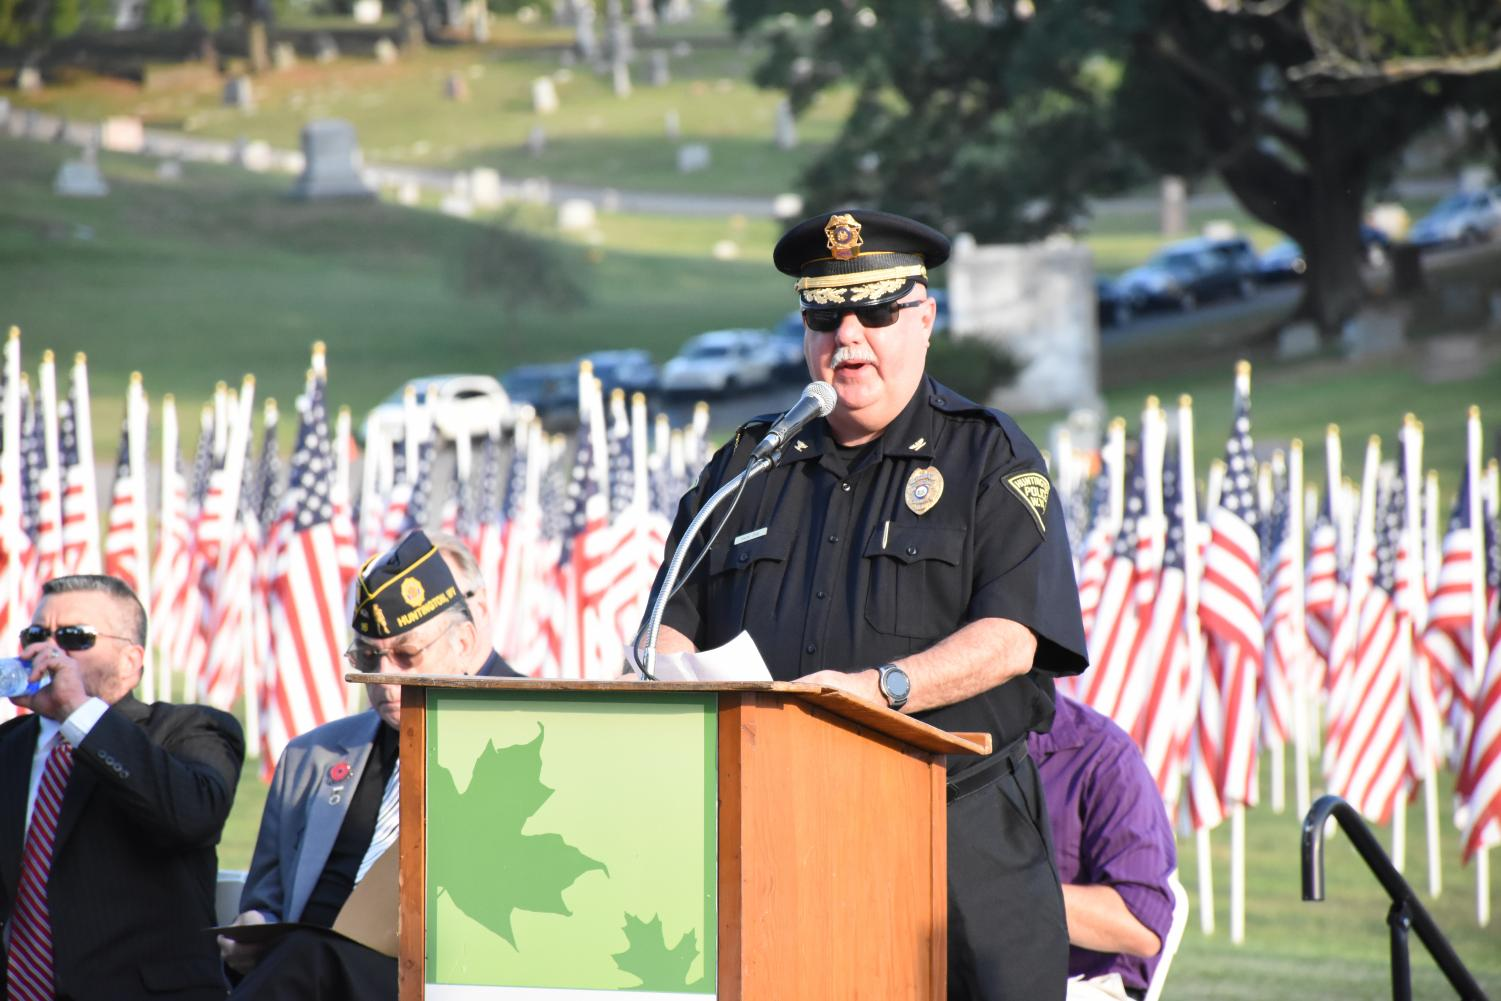 Huntington+Police+Chief+Hank+Dial+spoke+at+the+event.+